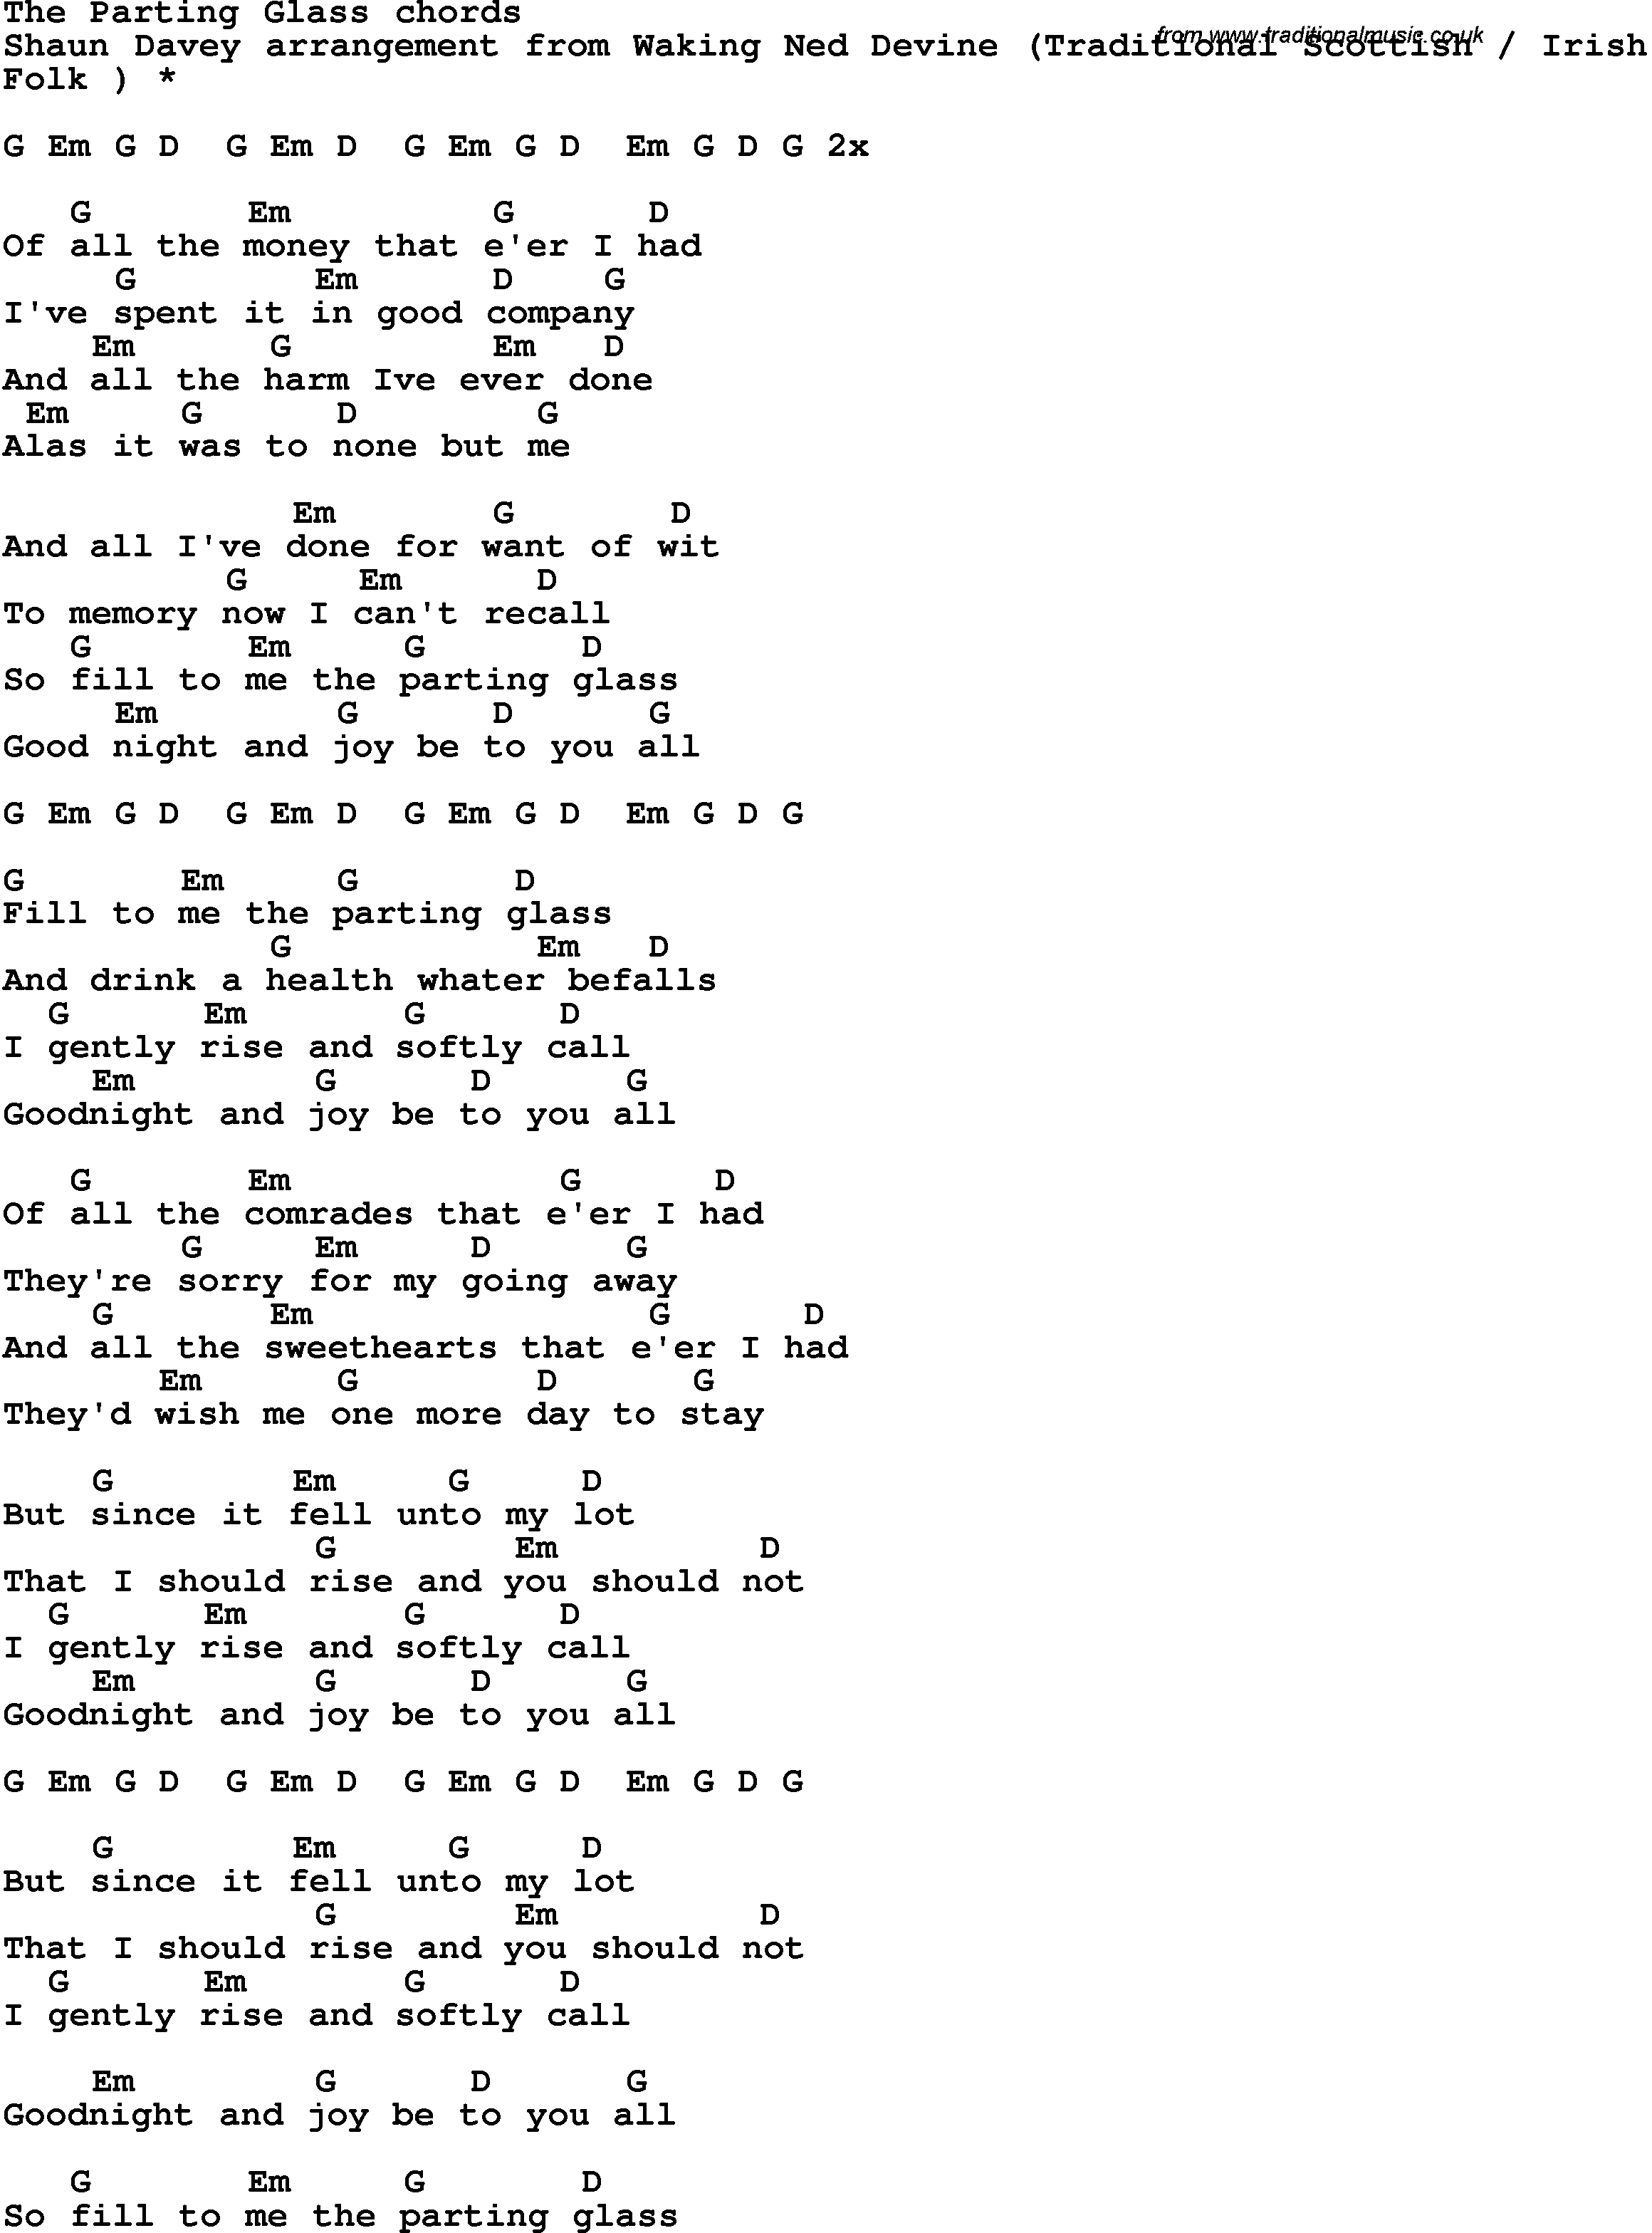 Song Lyrics With Guitar Chords For The Parting Glass Shaun Davey